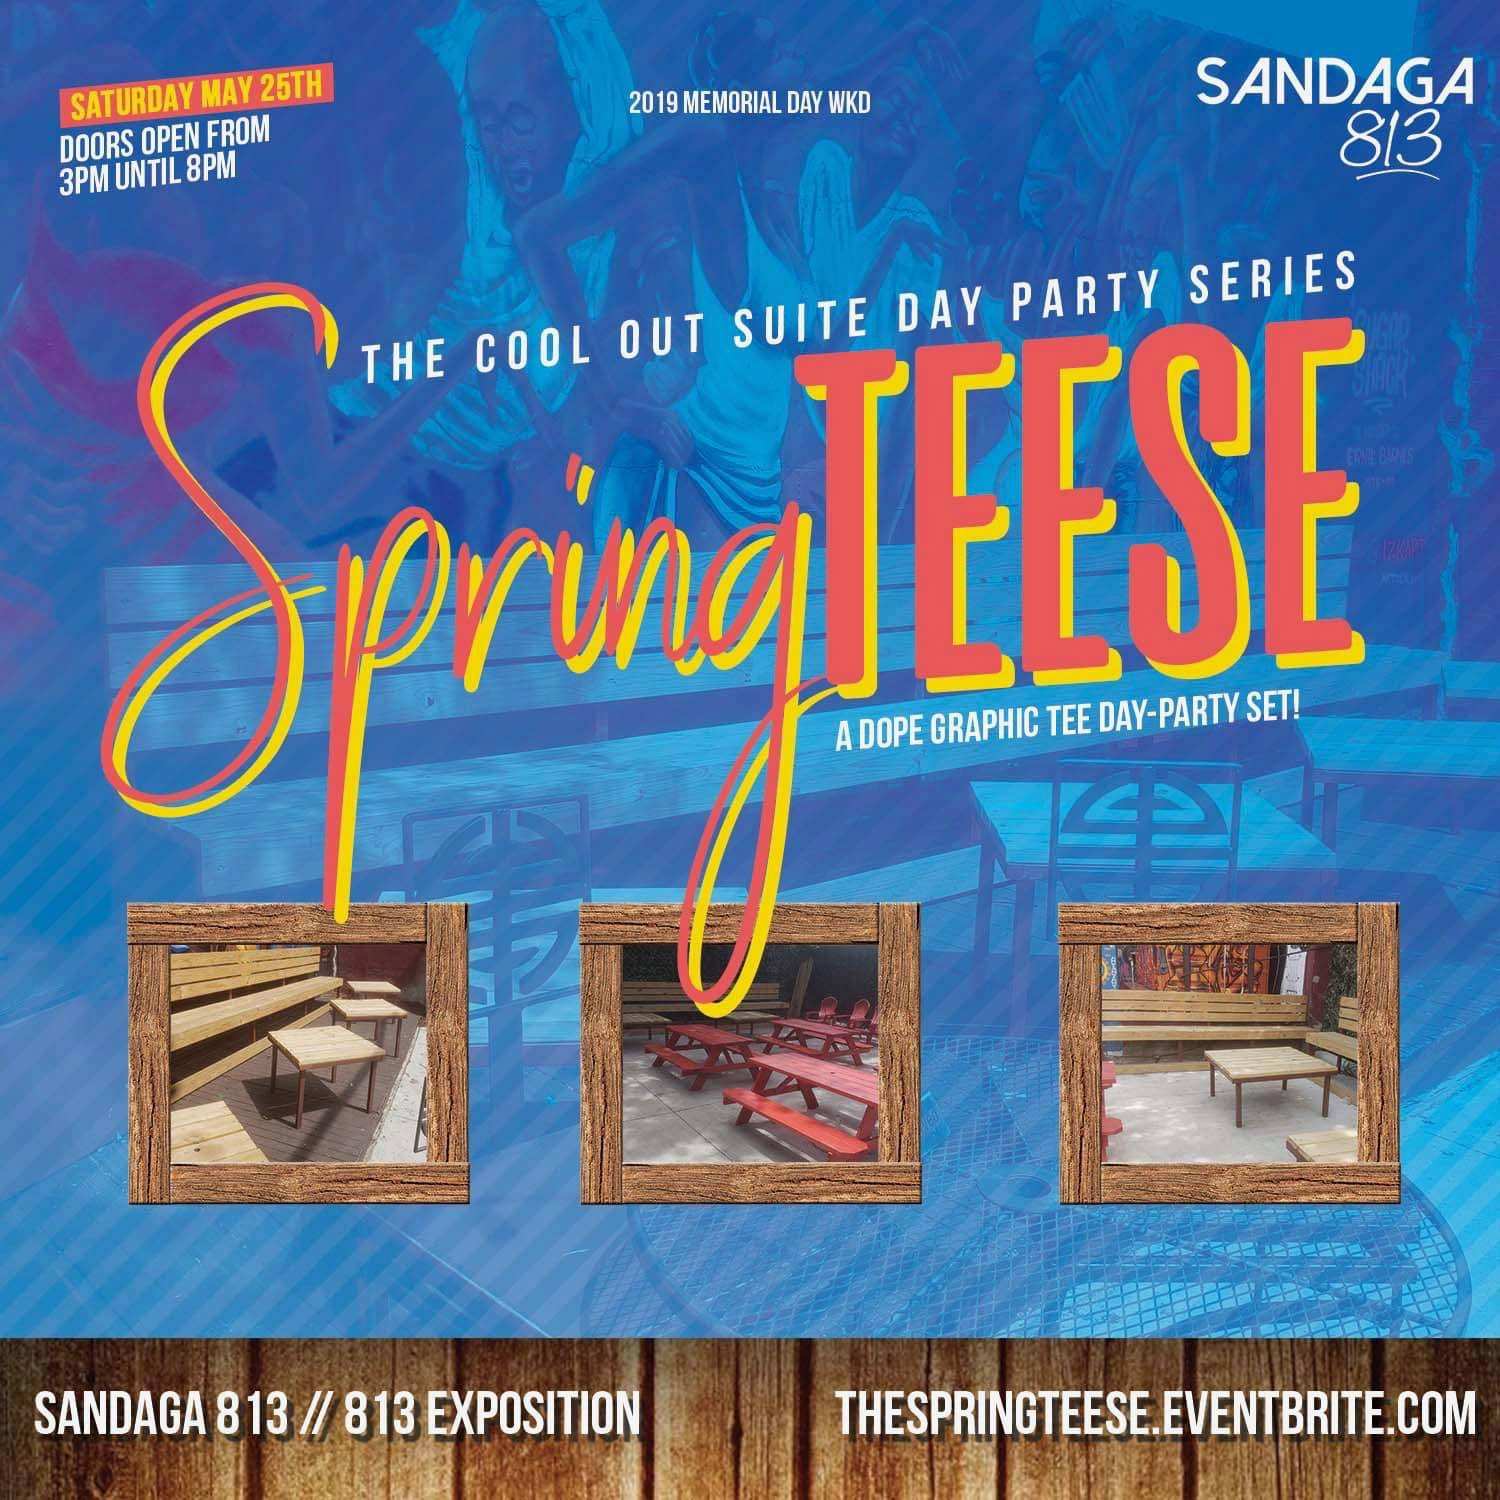 Spring TEEse DAY Party